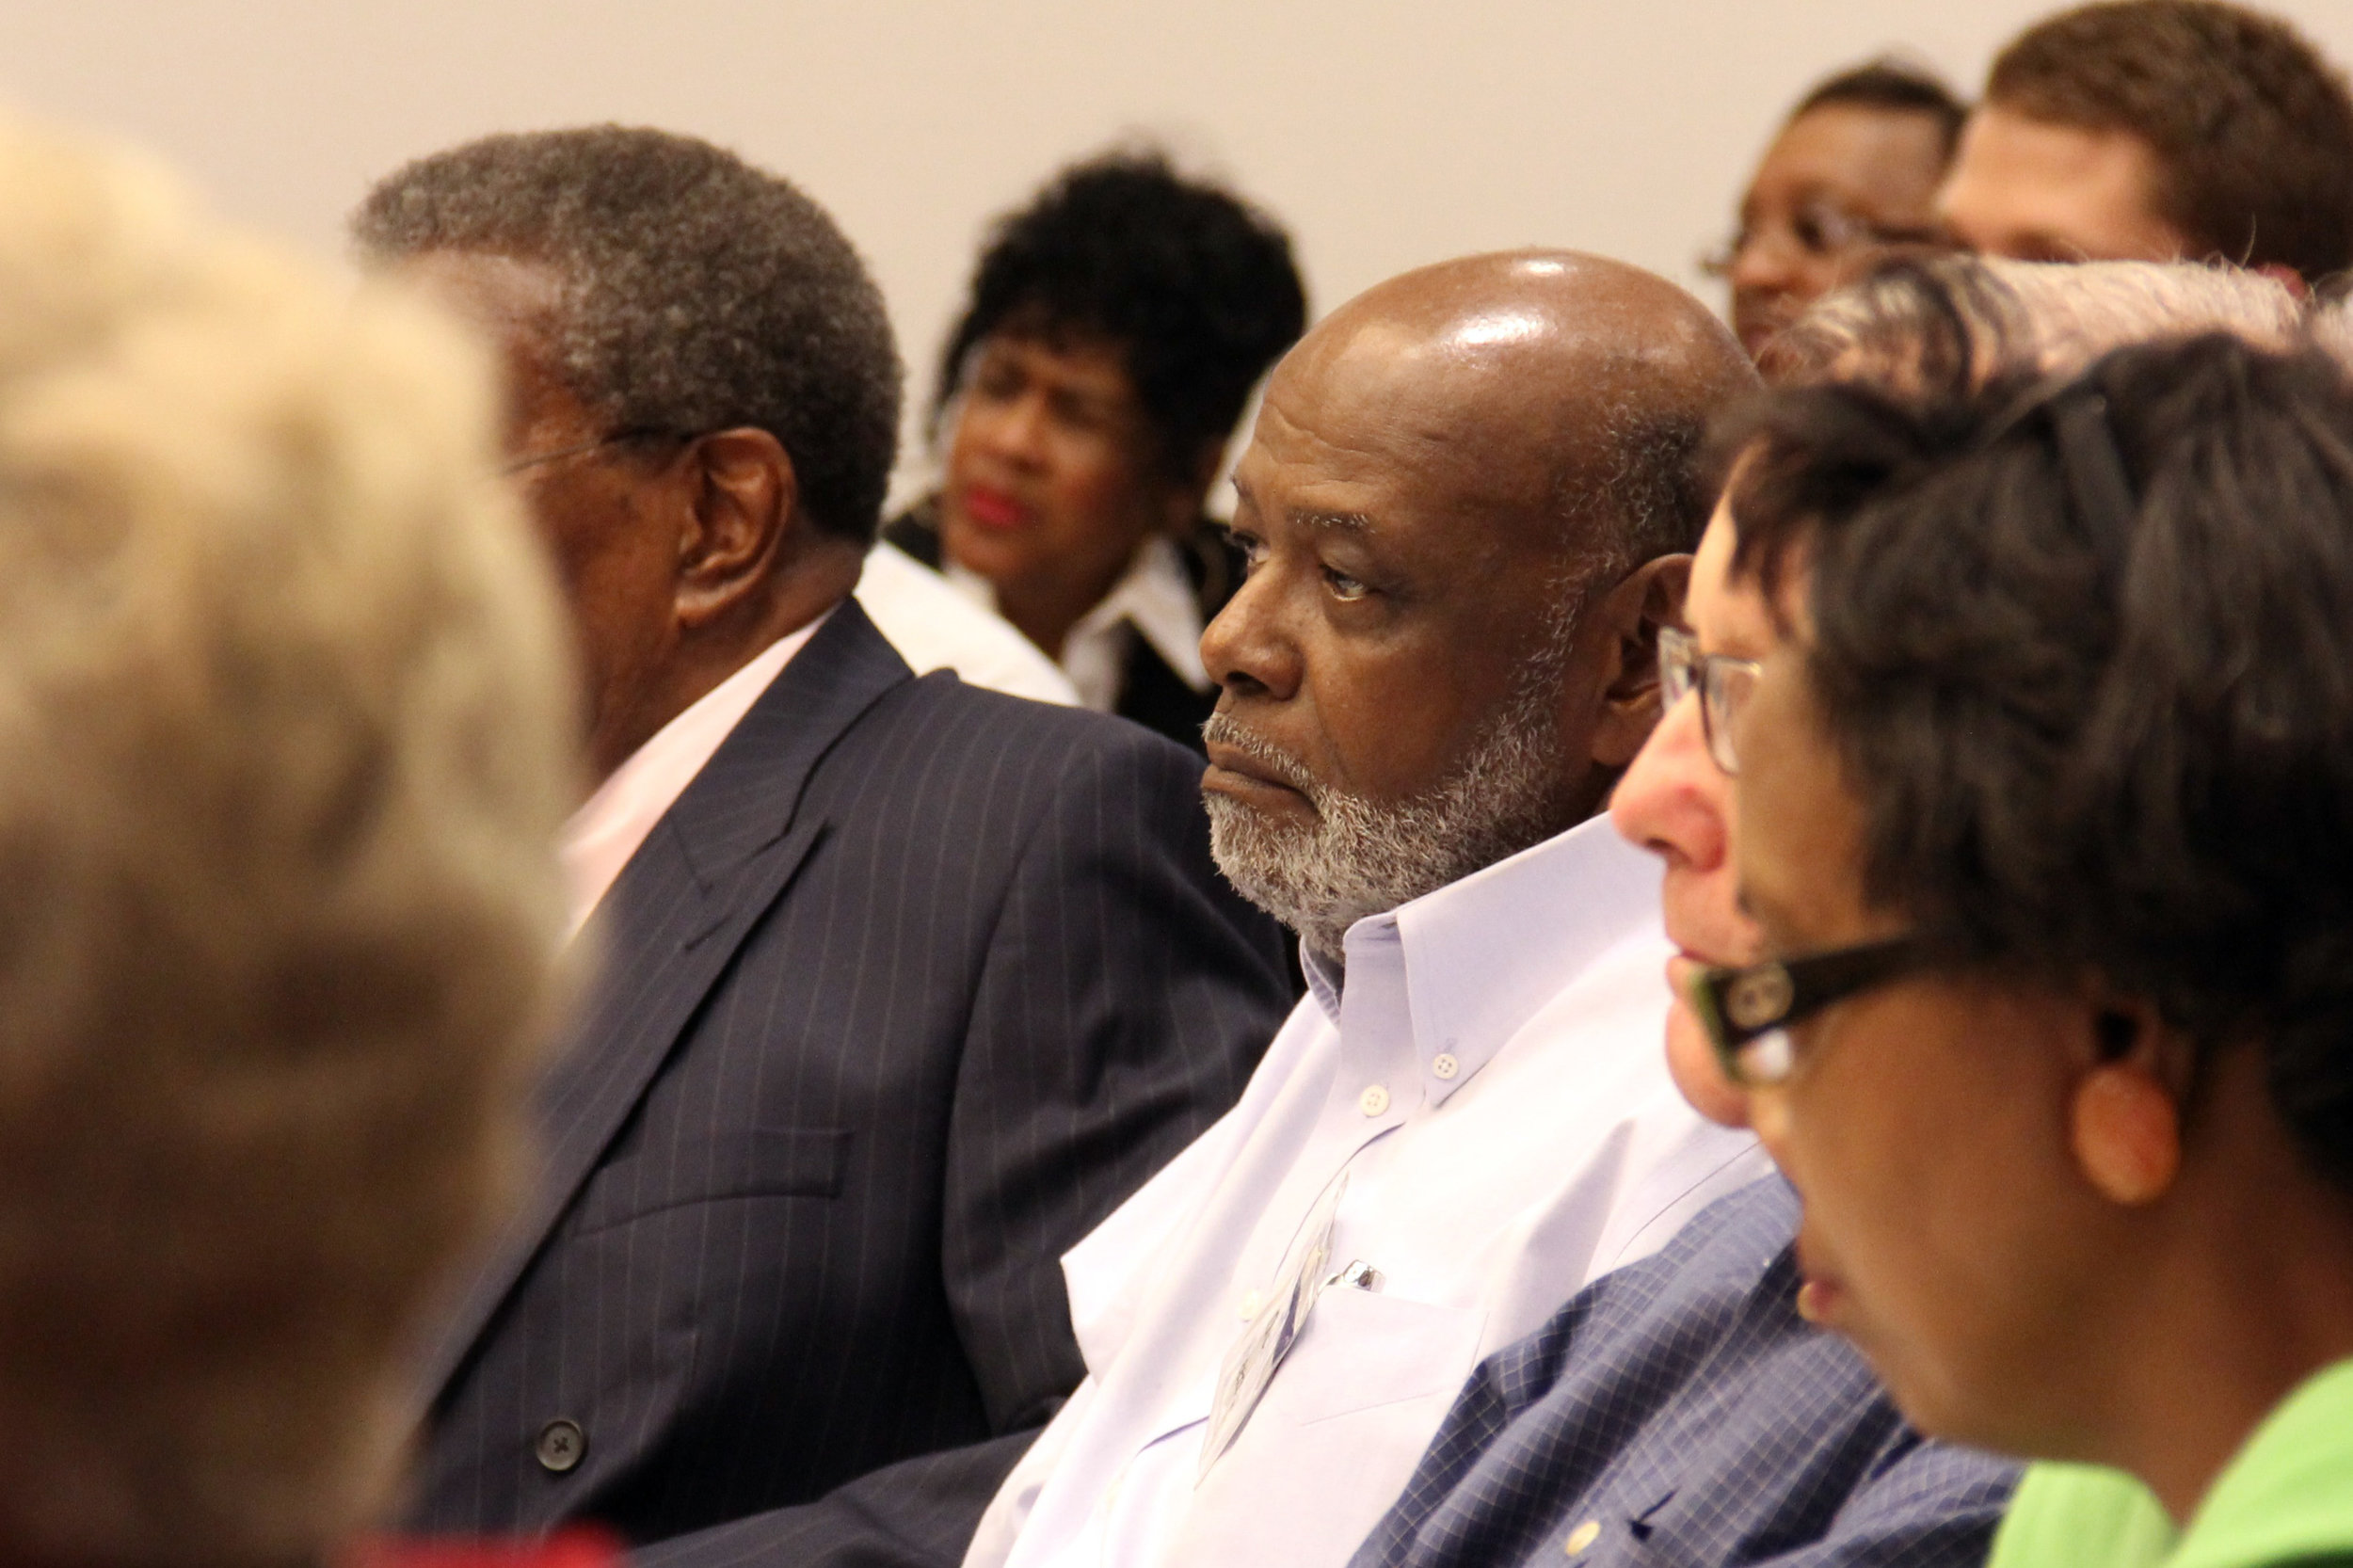 LINC Commissioner Herb Freeman participates in a meeting in June 2013.